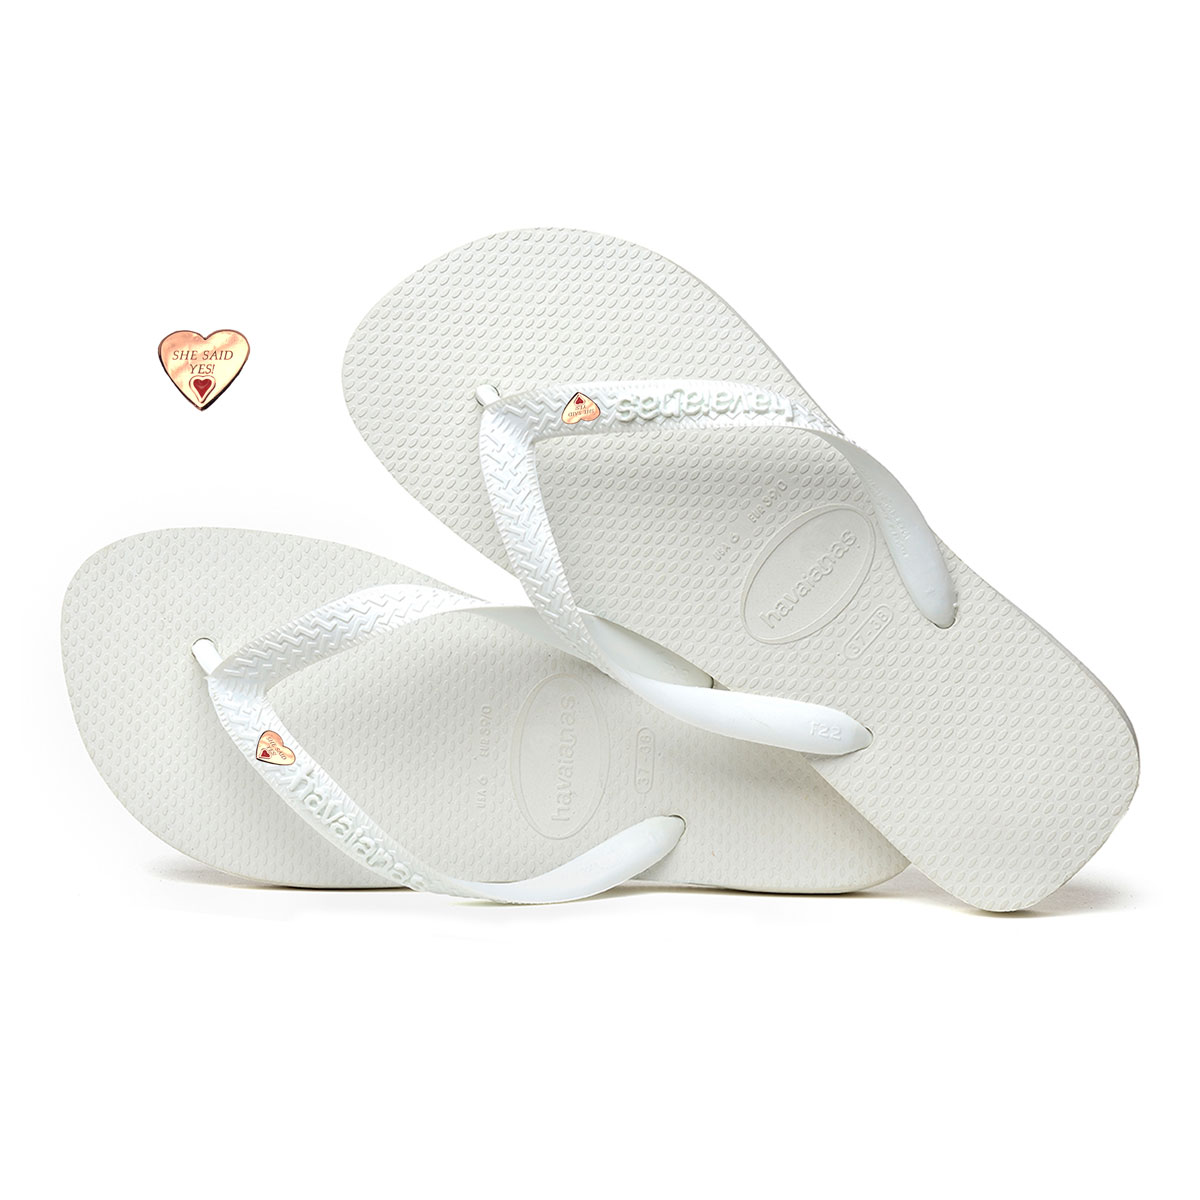 Havaianas White Top Flip-Flops with Gold Heart Personalised Wedding